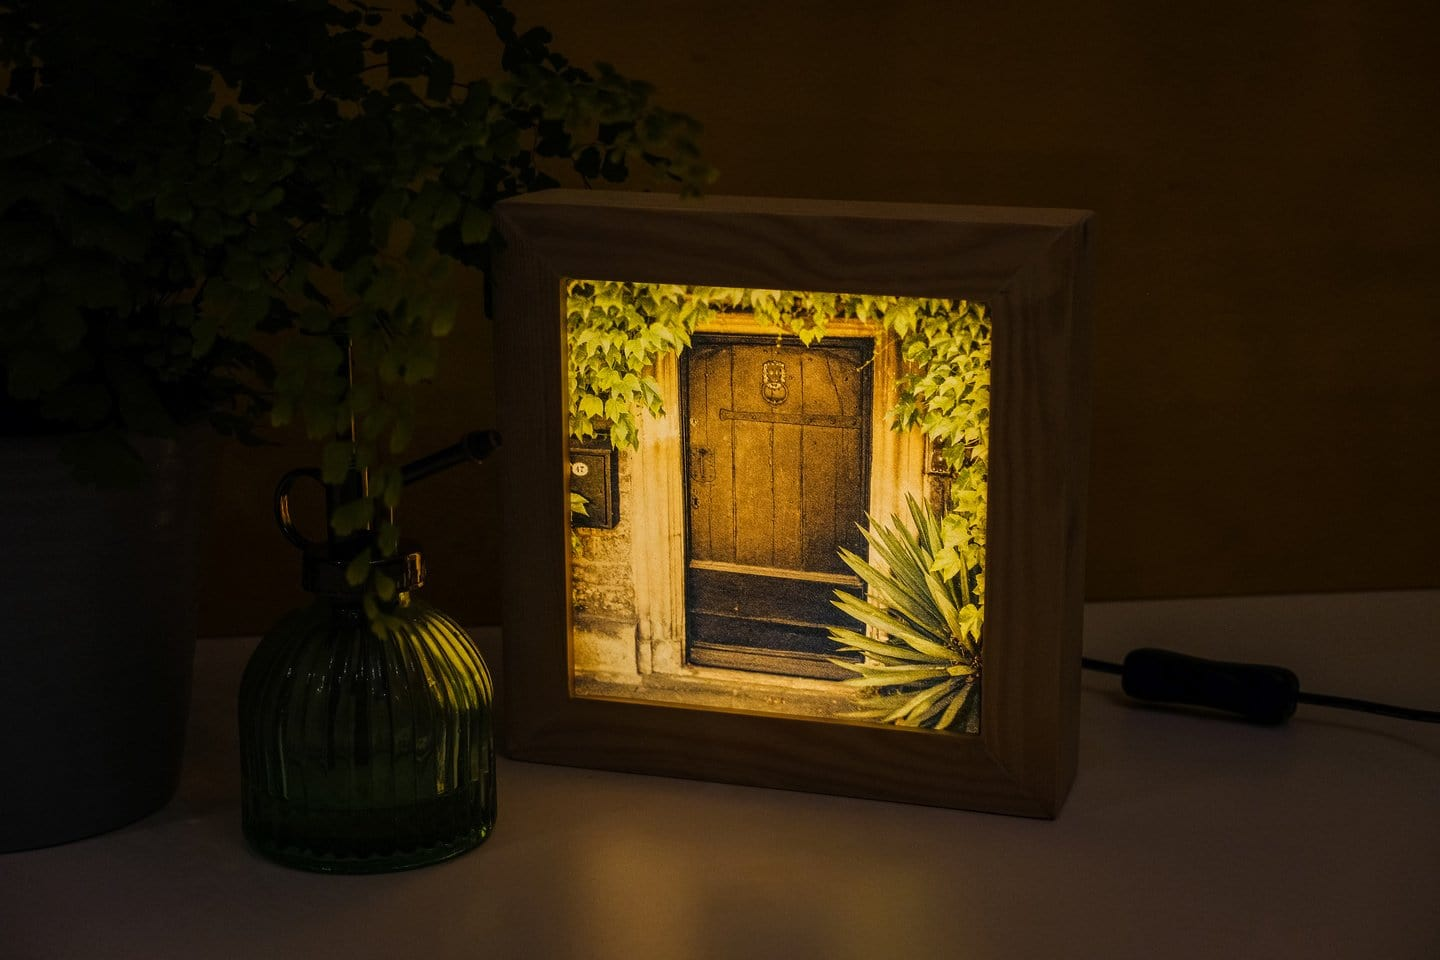 A plug-in light box